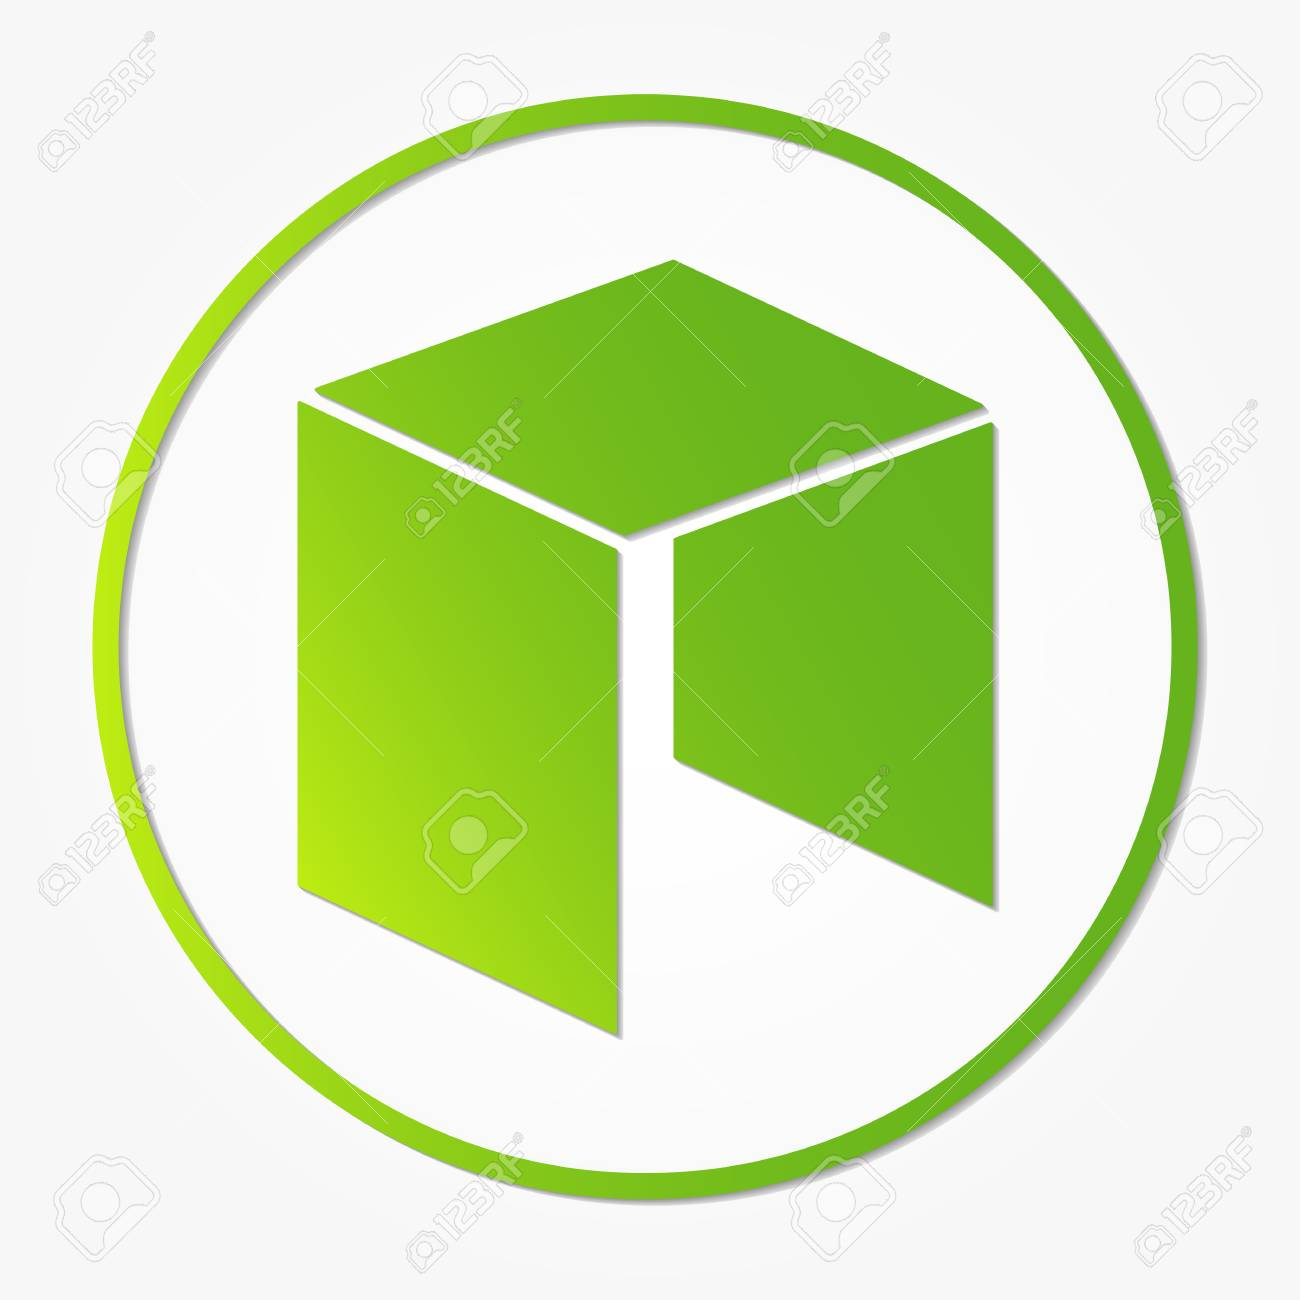 how to purchase neo cryptocurrency